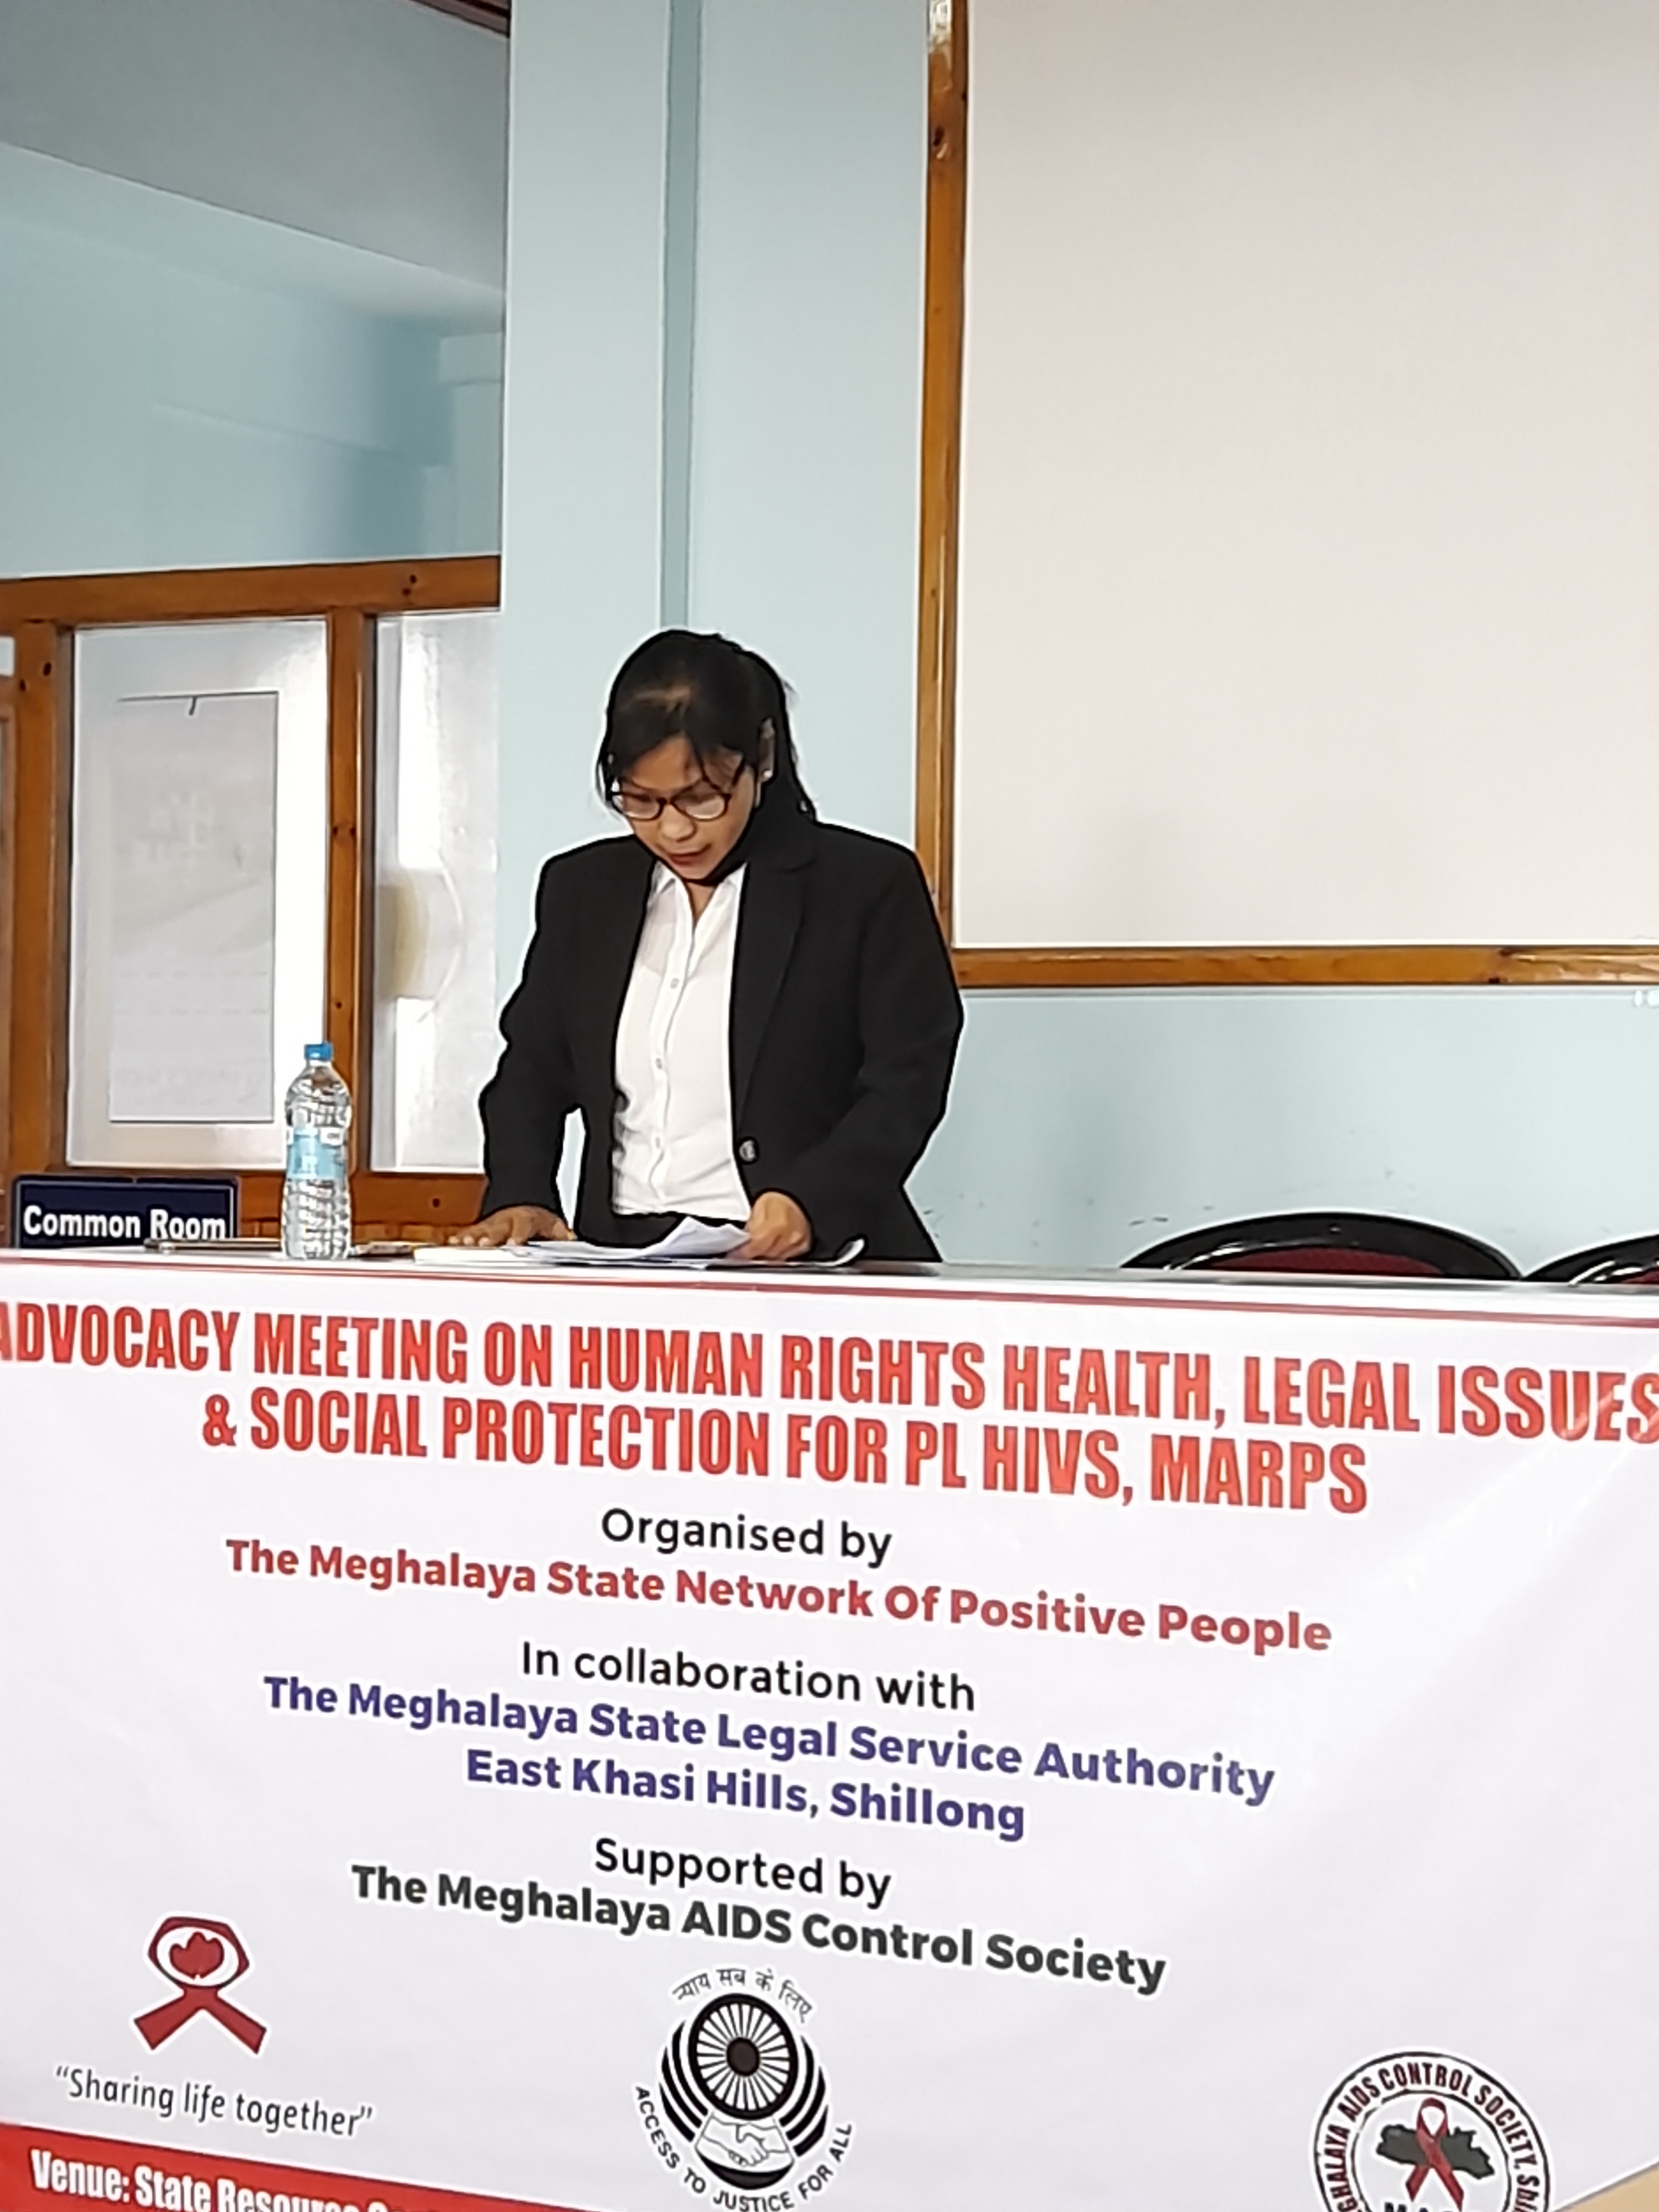 Advocacy Meeting On Human Rights, Health Rights, Legal Issues And Social Protection Scheme For Plhiv And Marps On The 22nd March 2021 In Collaboration With The Meghalaya State Network For Positive People